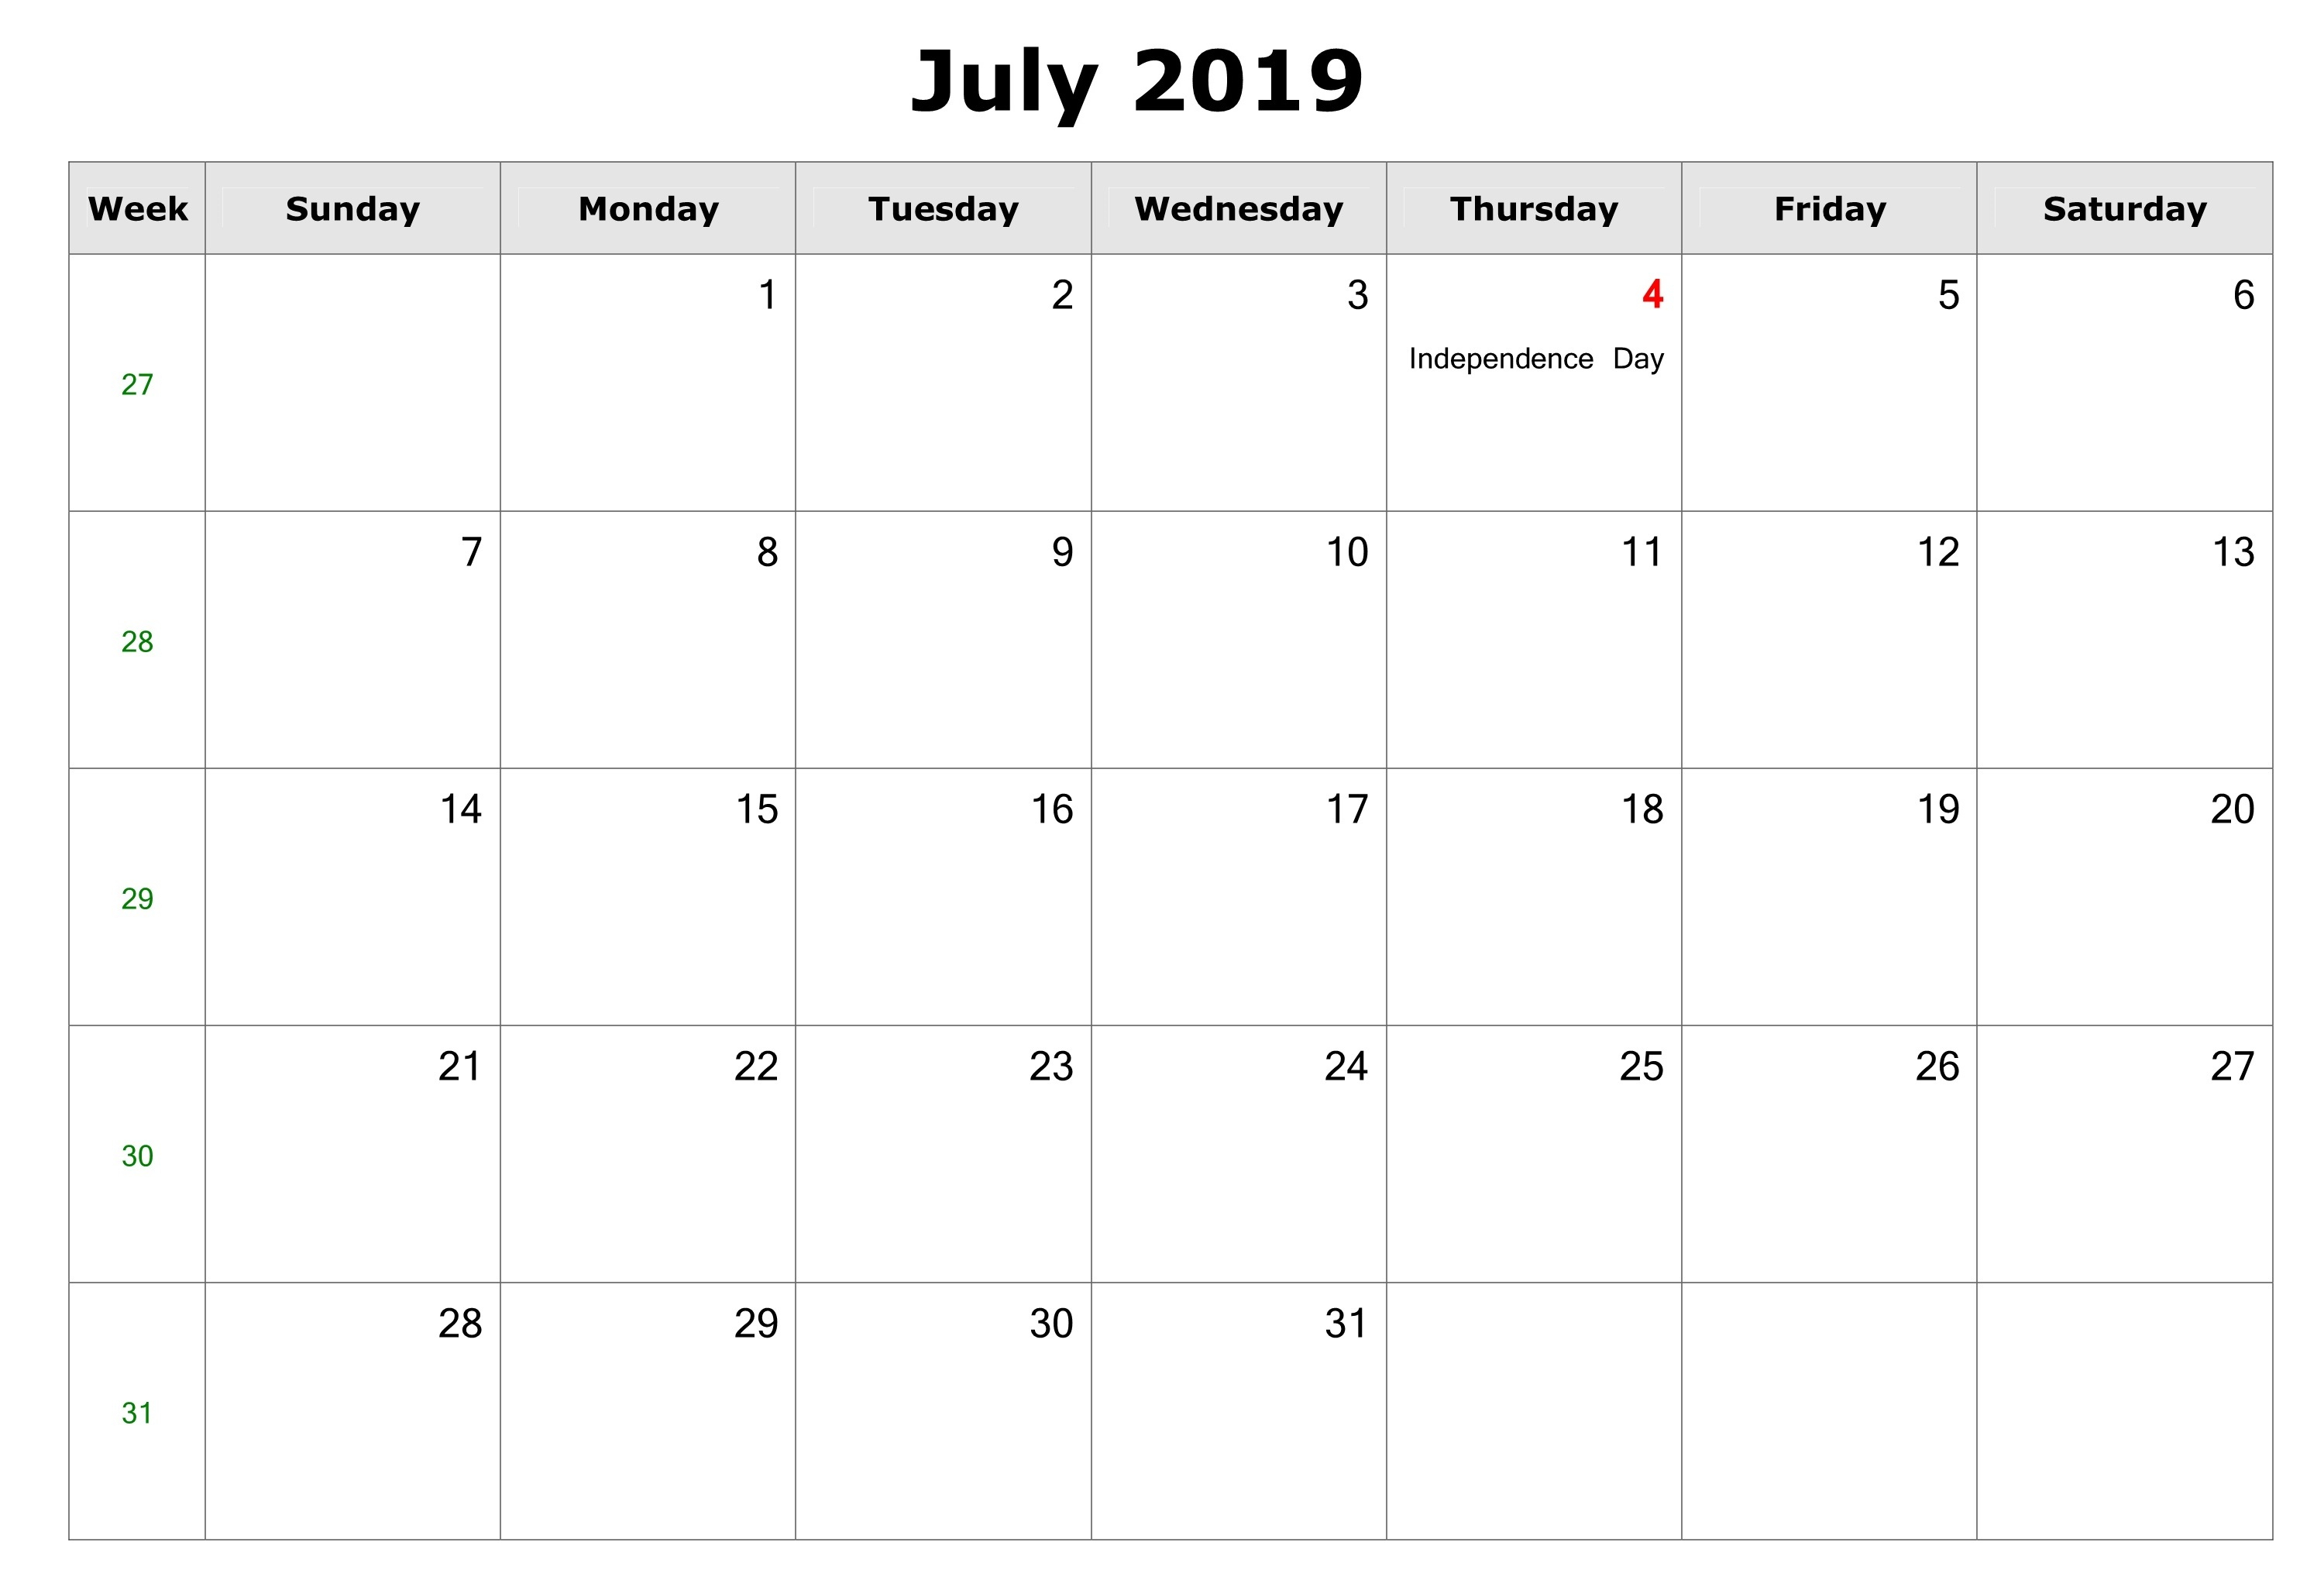 July 2019 Calendar With Holidays Canada, Usa, Australia with regard to Printable Canadian Calendar With Holidays